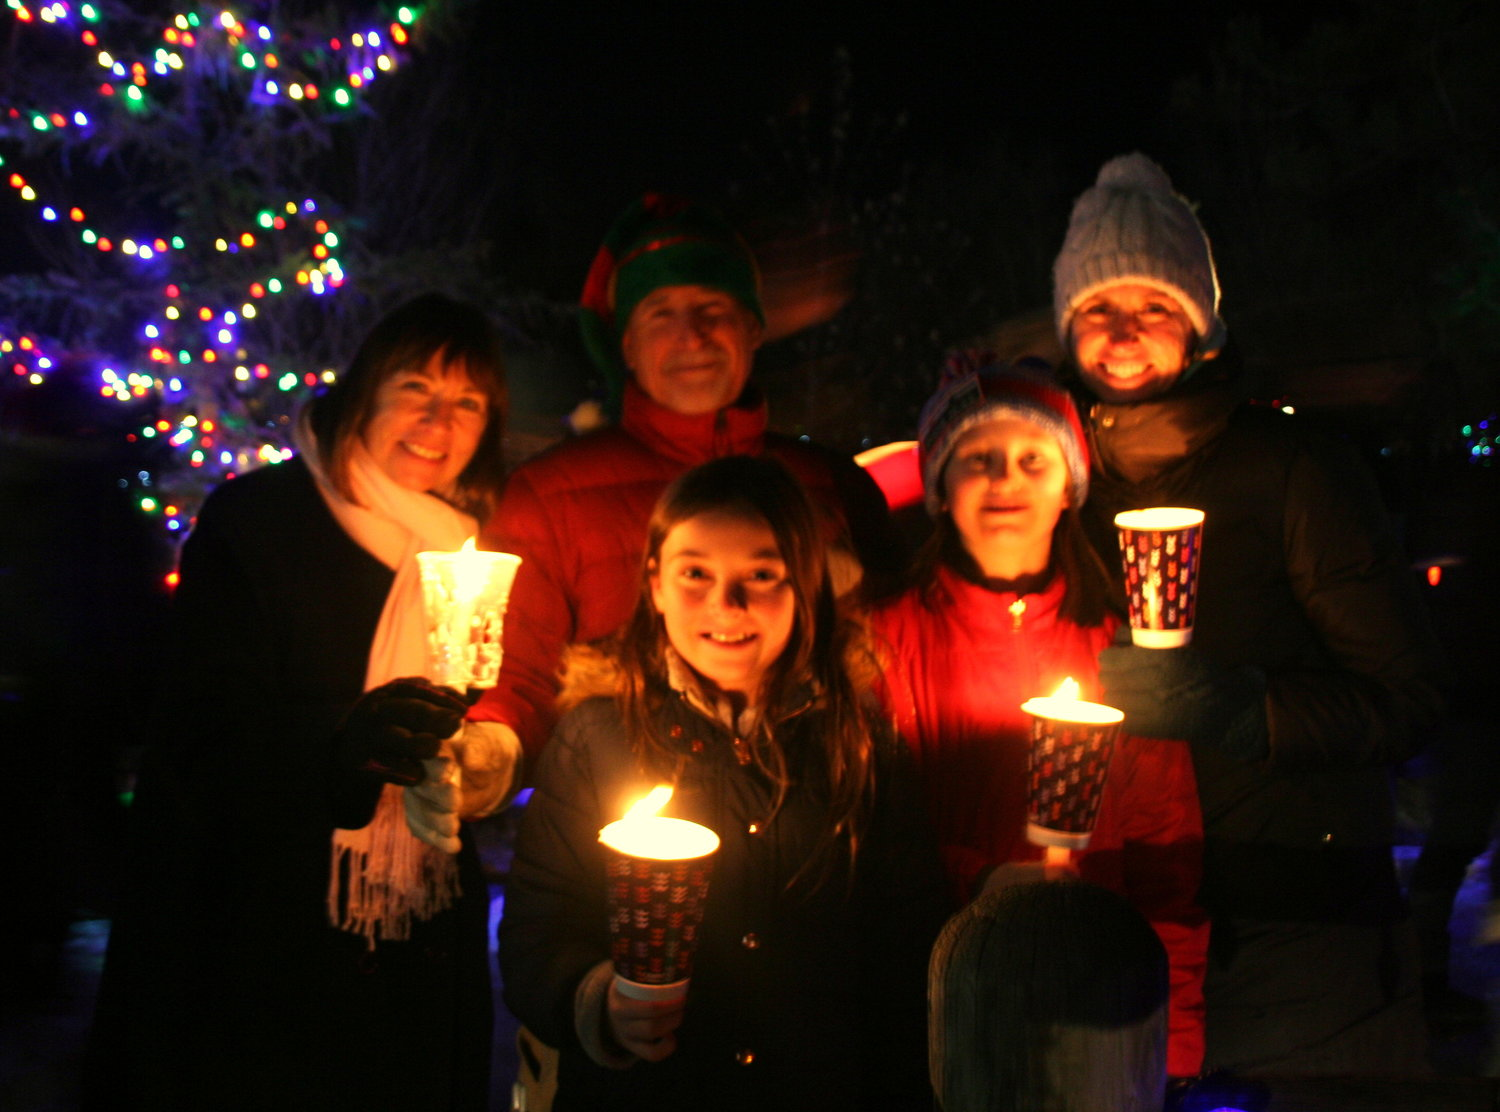 The Karp, Roman and Vollmer families — a mix of Golden, Arvada and Denver residents — gather for a photo at the Candlelight Walk on Dec. 6.